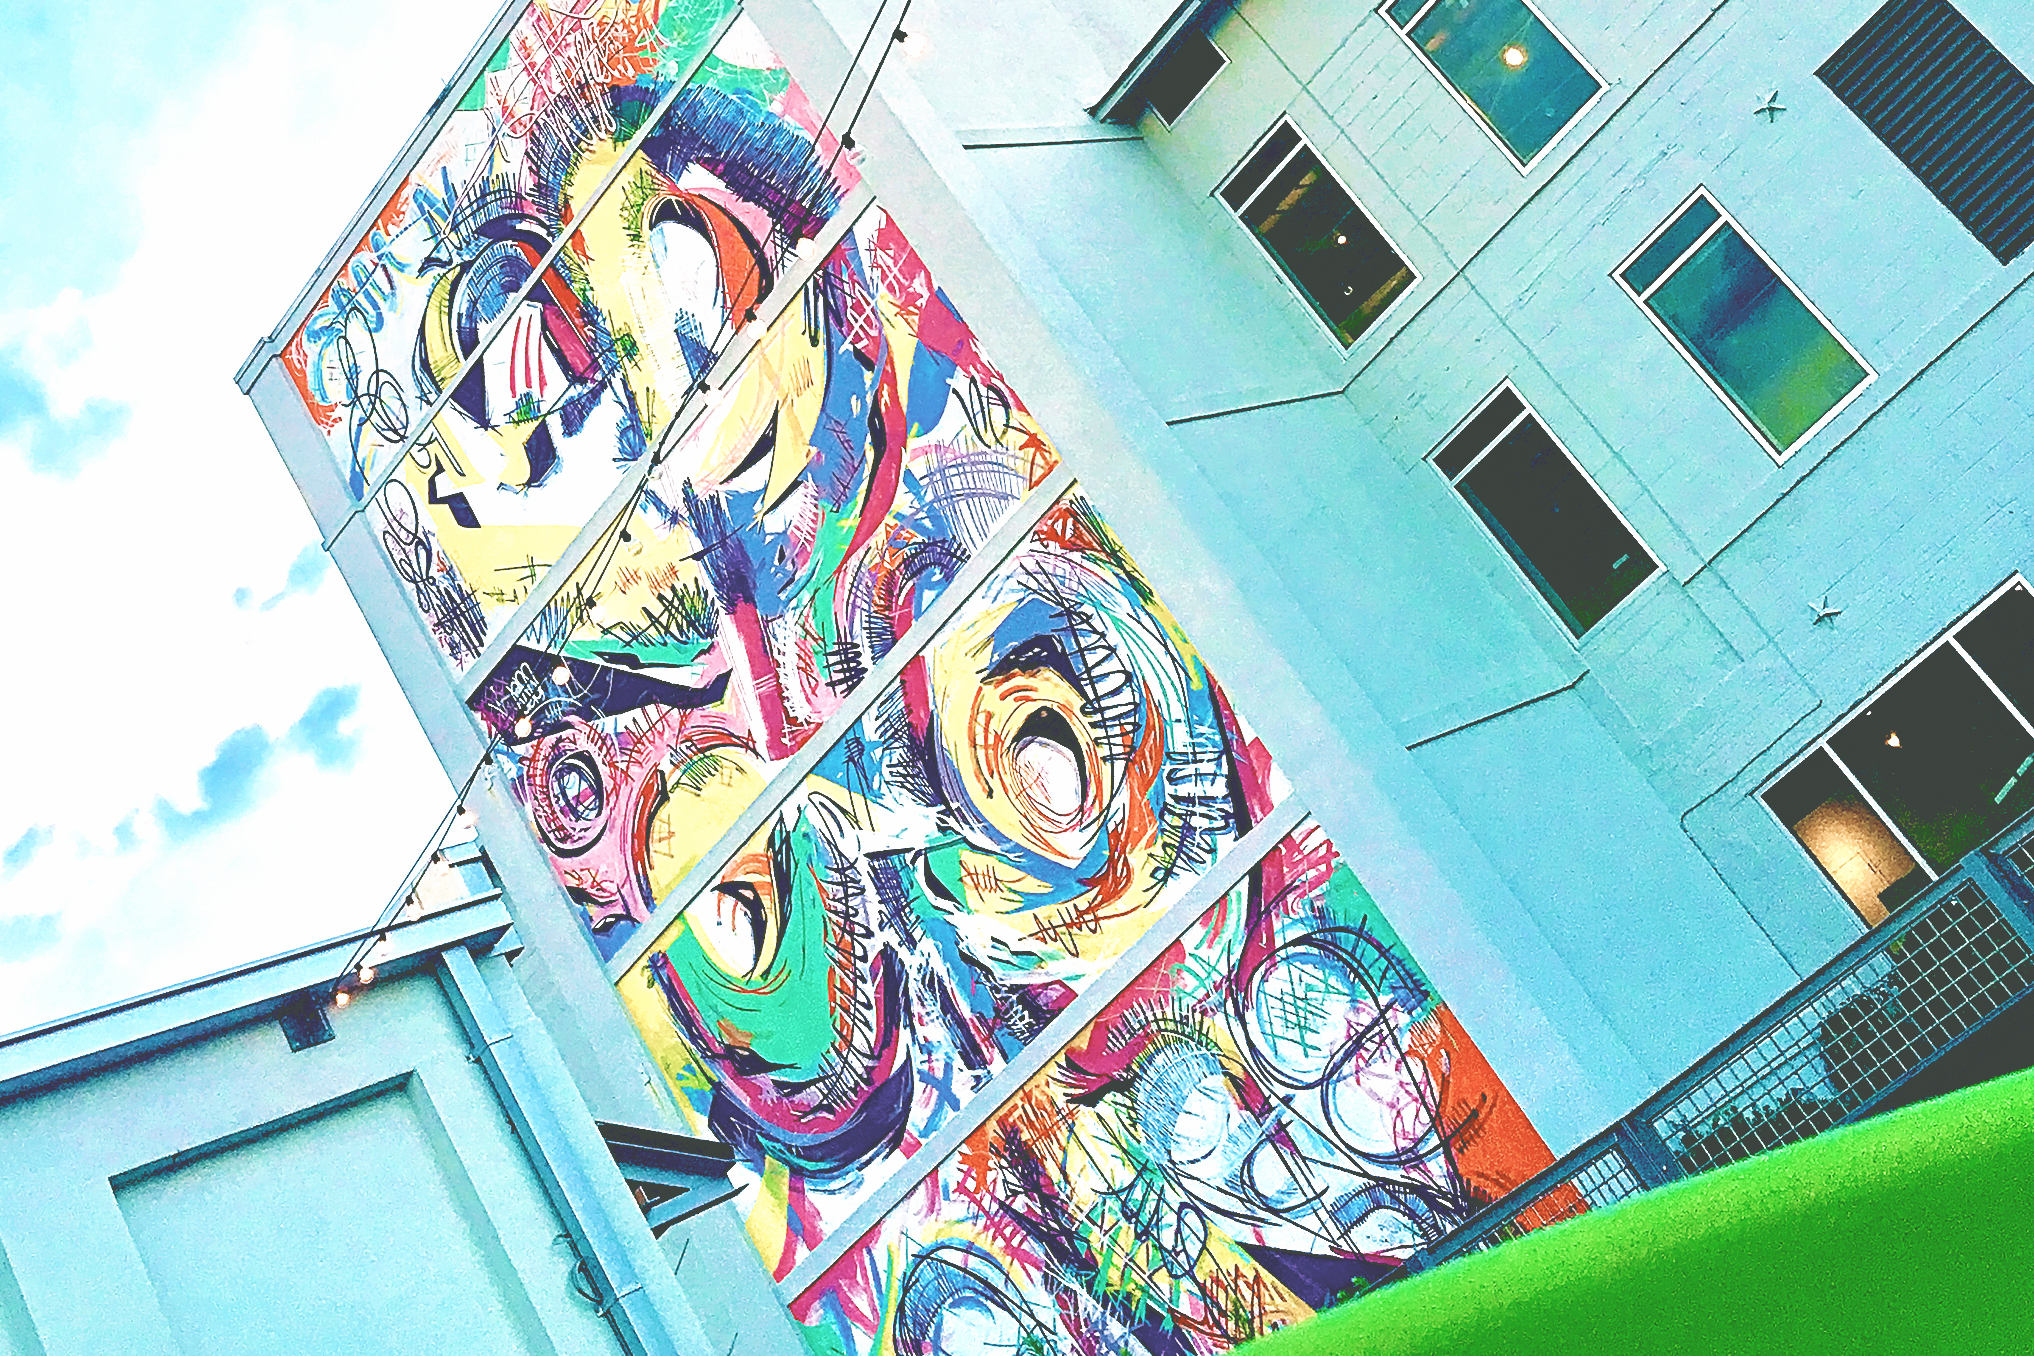 Savannah Mural Guide: SCAD's Montgomery Hall has one of the largest and most colorful murals in Savannah.